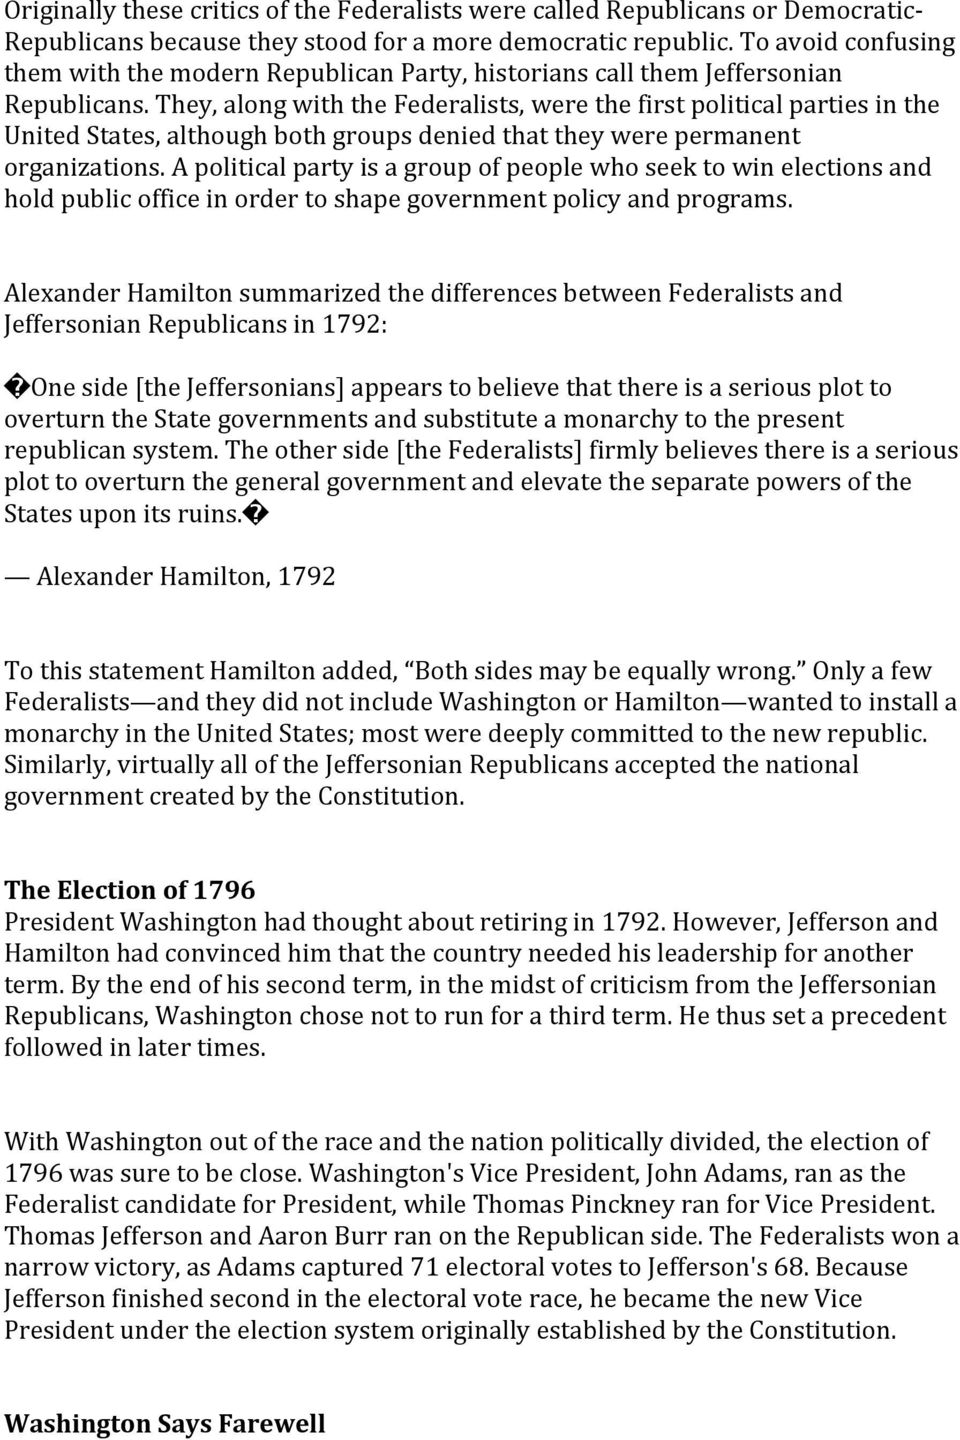 differences between federalists and republicans